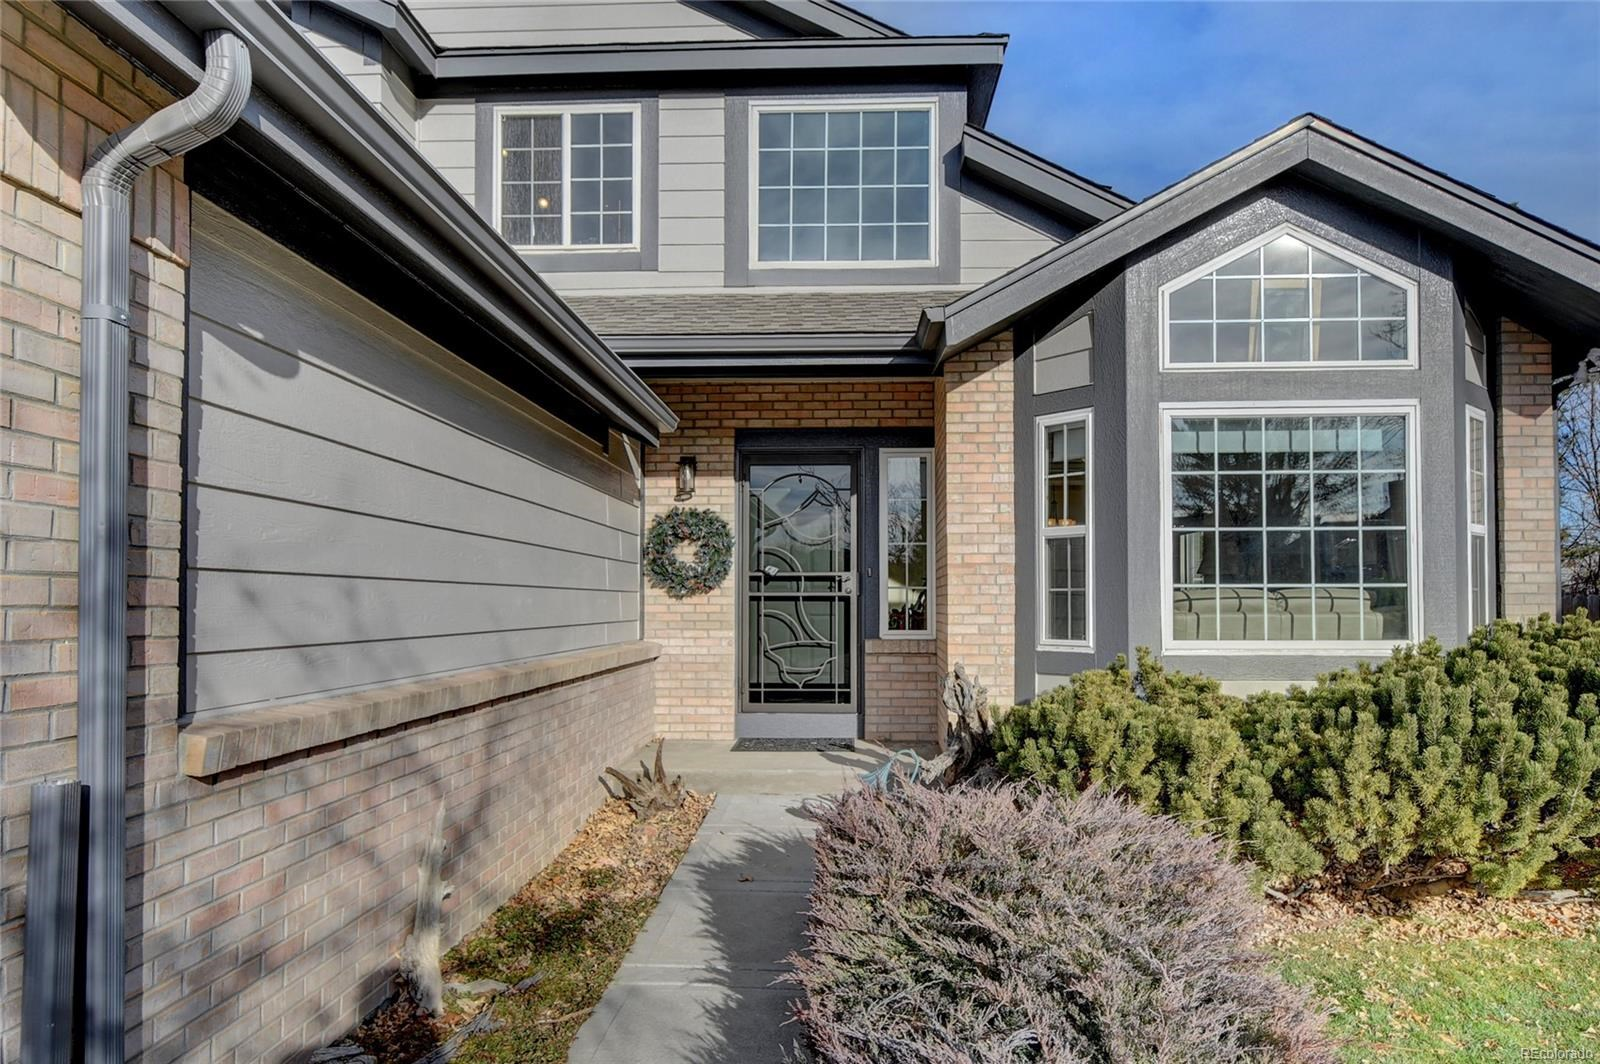 MLS# 9913436 - 2 - 5726 W 81st Place, Arvada, CO 80003